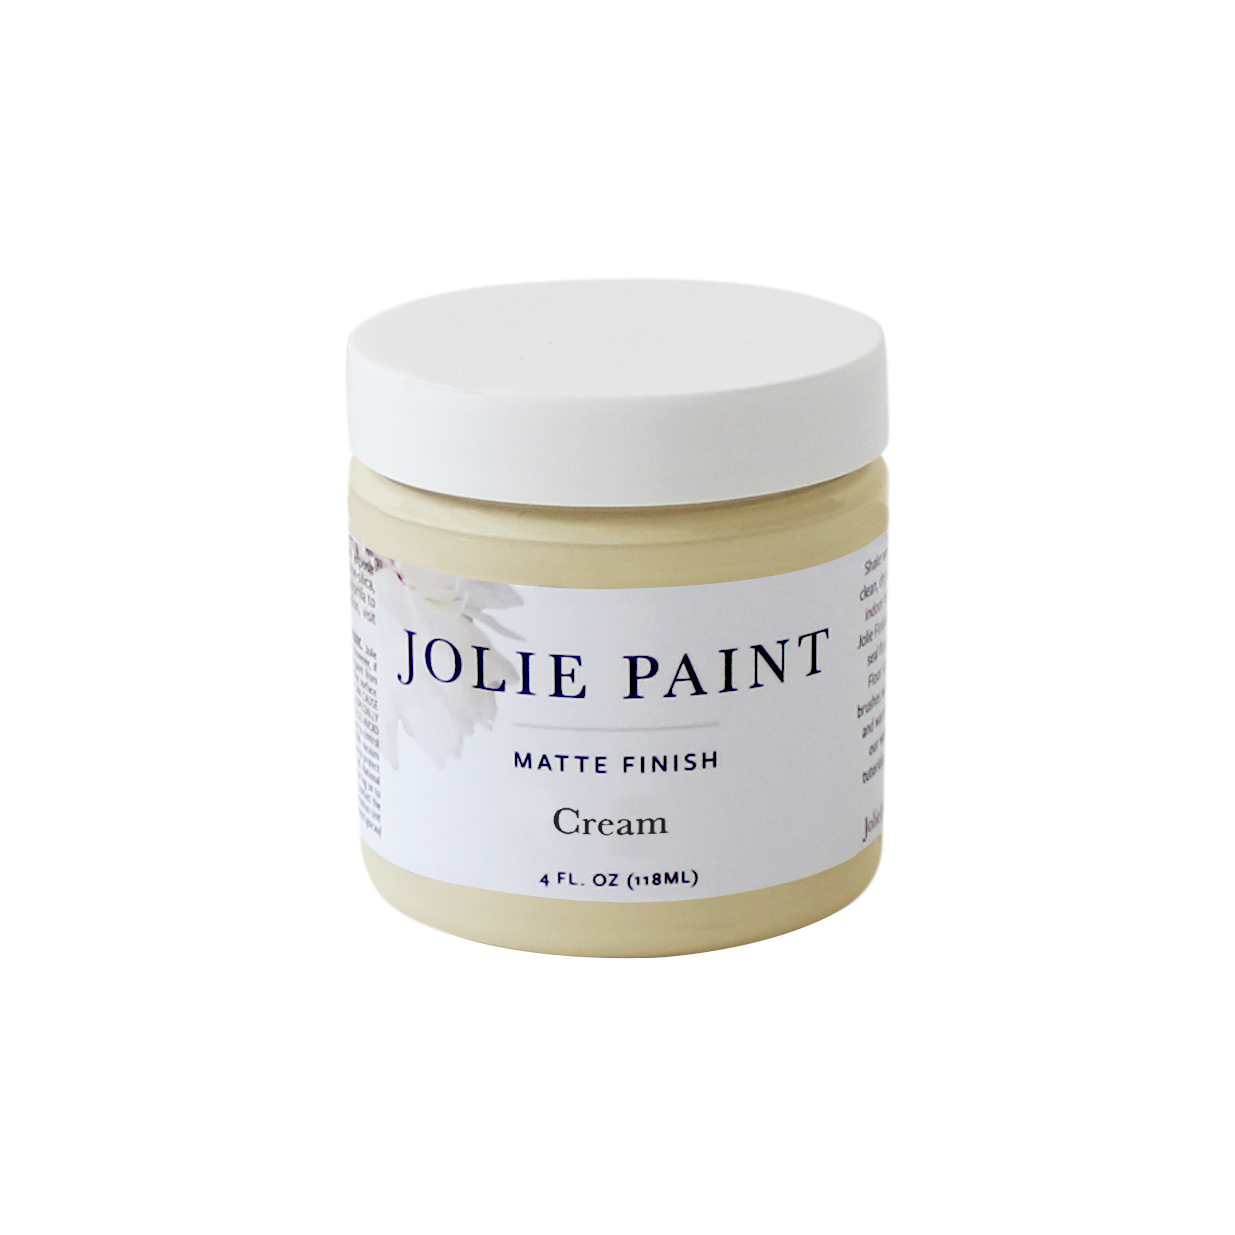 Cream - Jolie Paint (s)